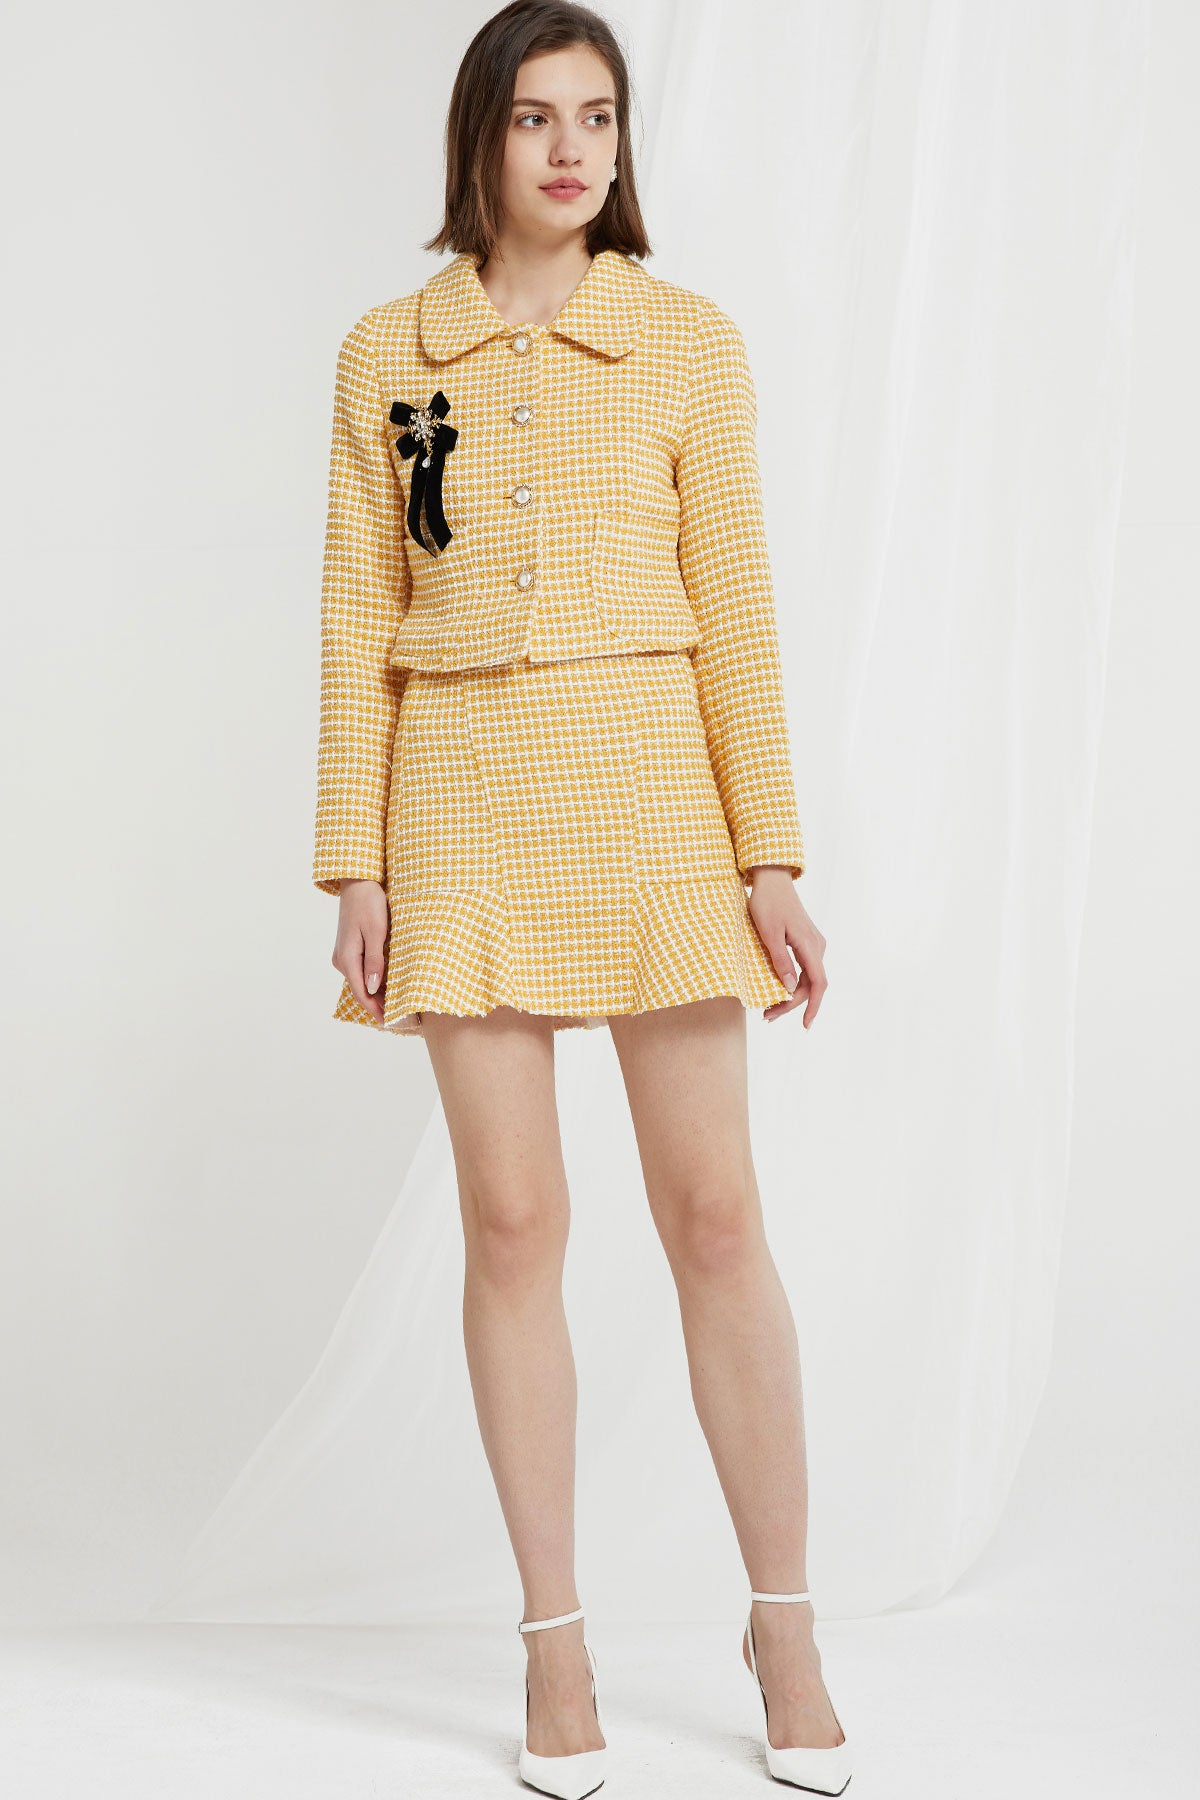 Liz Peter Pan Collar Jacket in Tweed (Pre-Order)